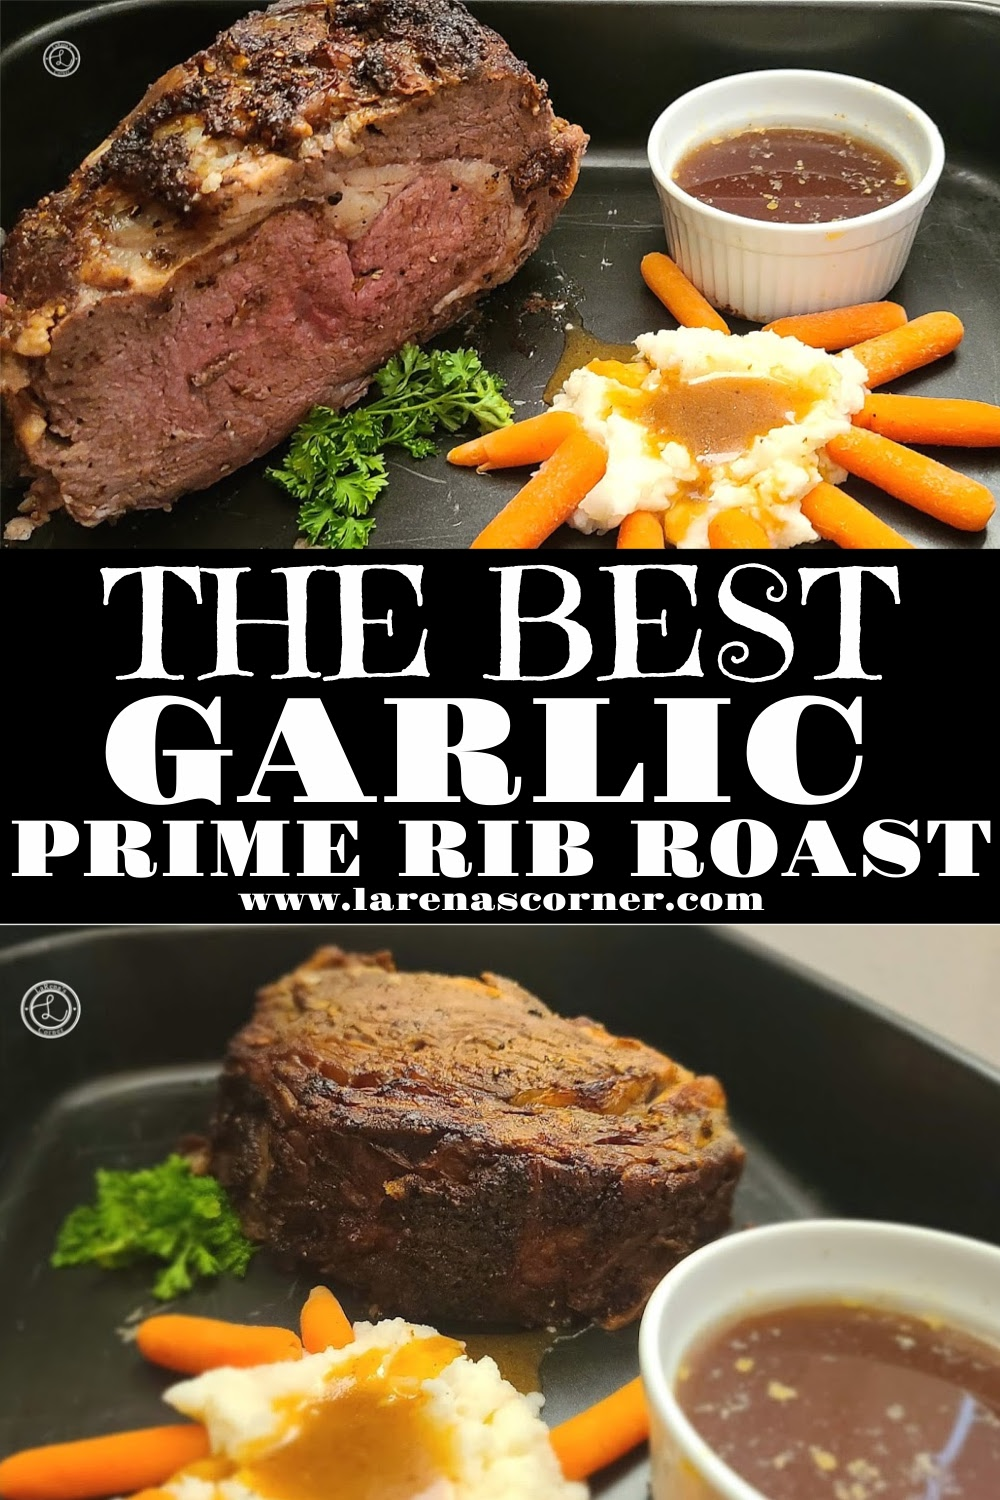 A slab of Prime Rib showing the outside and the inside. Medium Rare roast